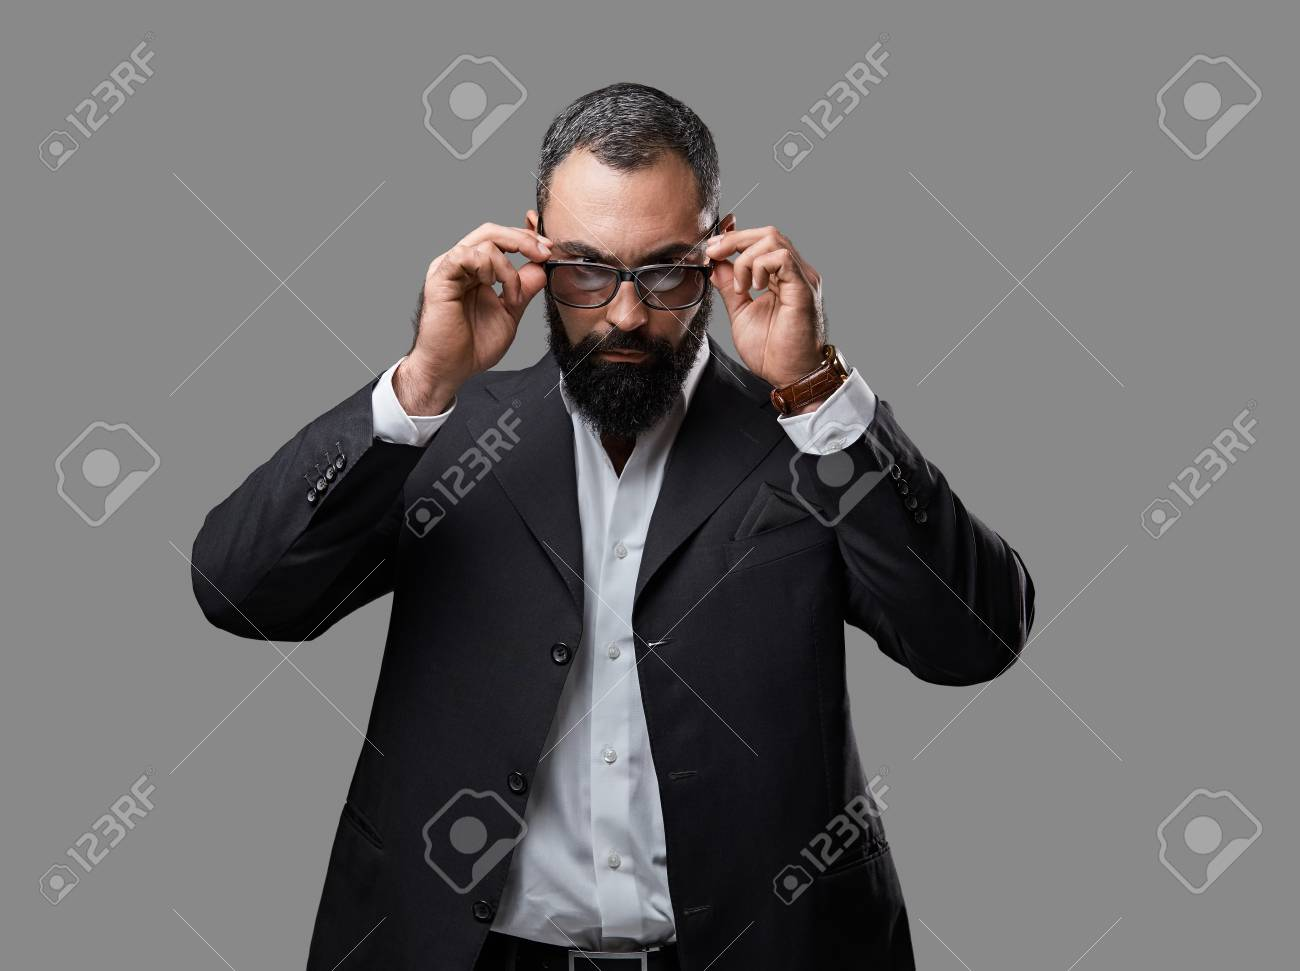 25fd5768a64f Studio portrait of bearded male dressed in a suit and sunglasses over grey  background. Stock